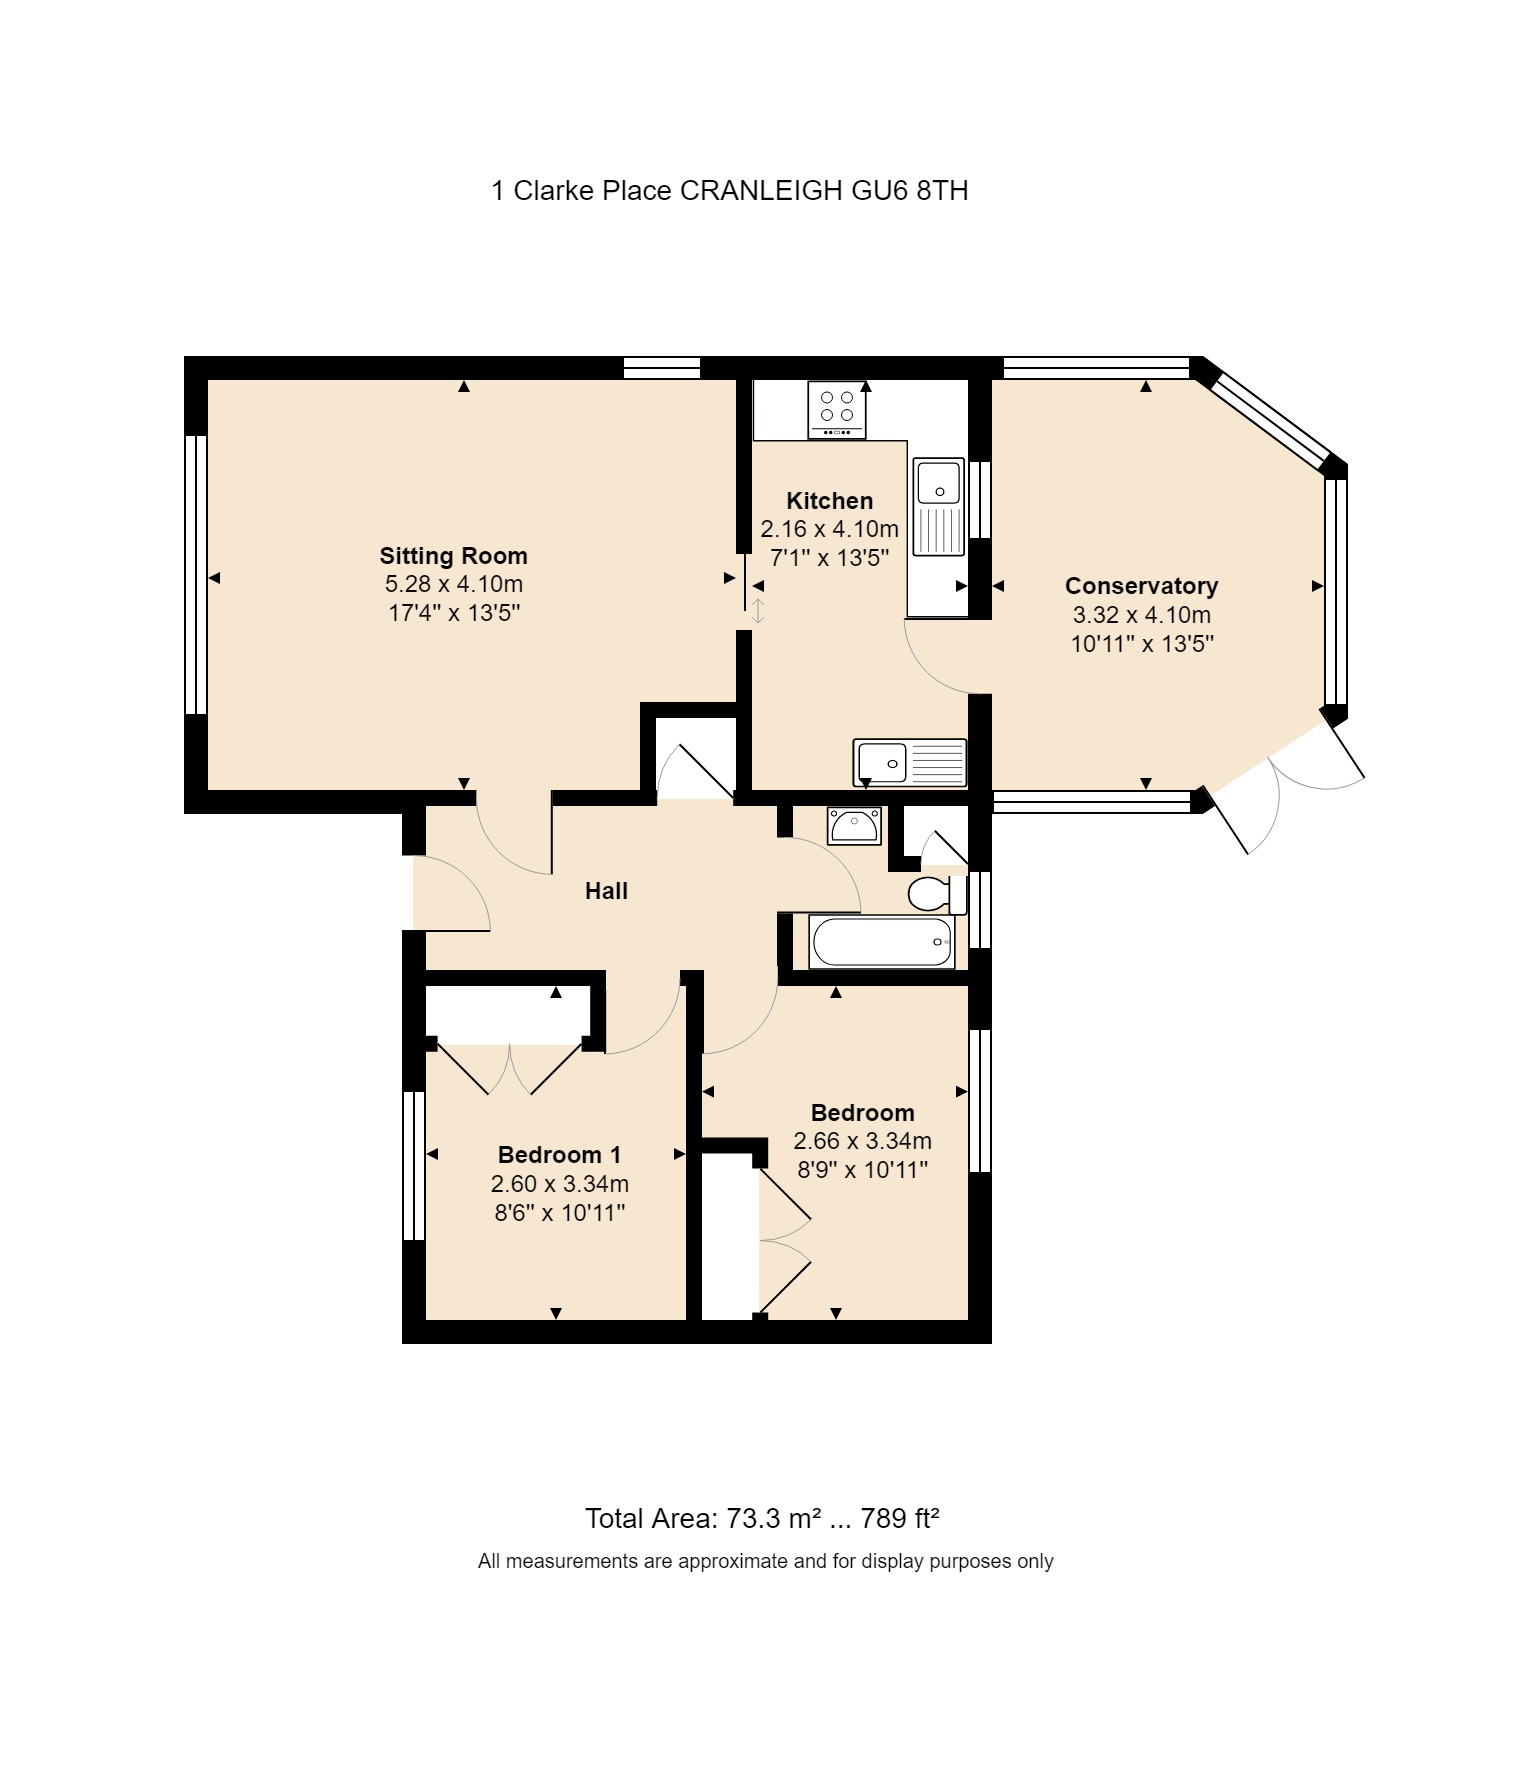 1 Clarke Place Floorplan